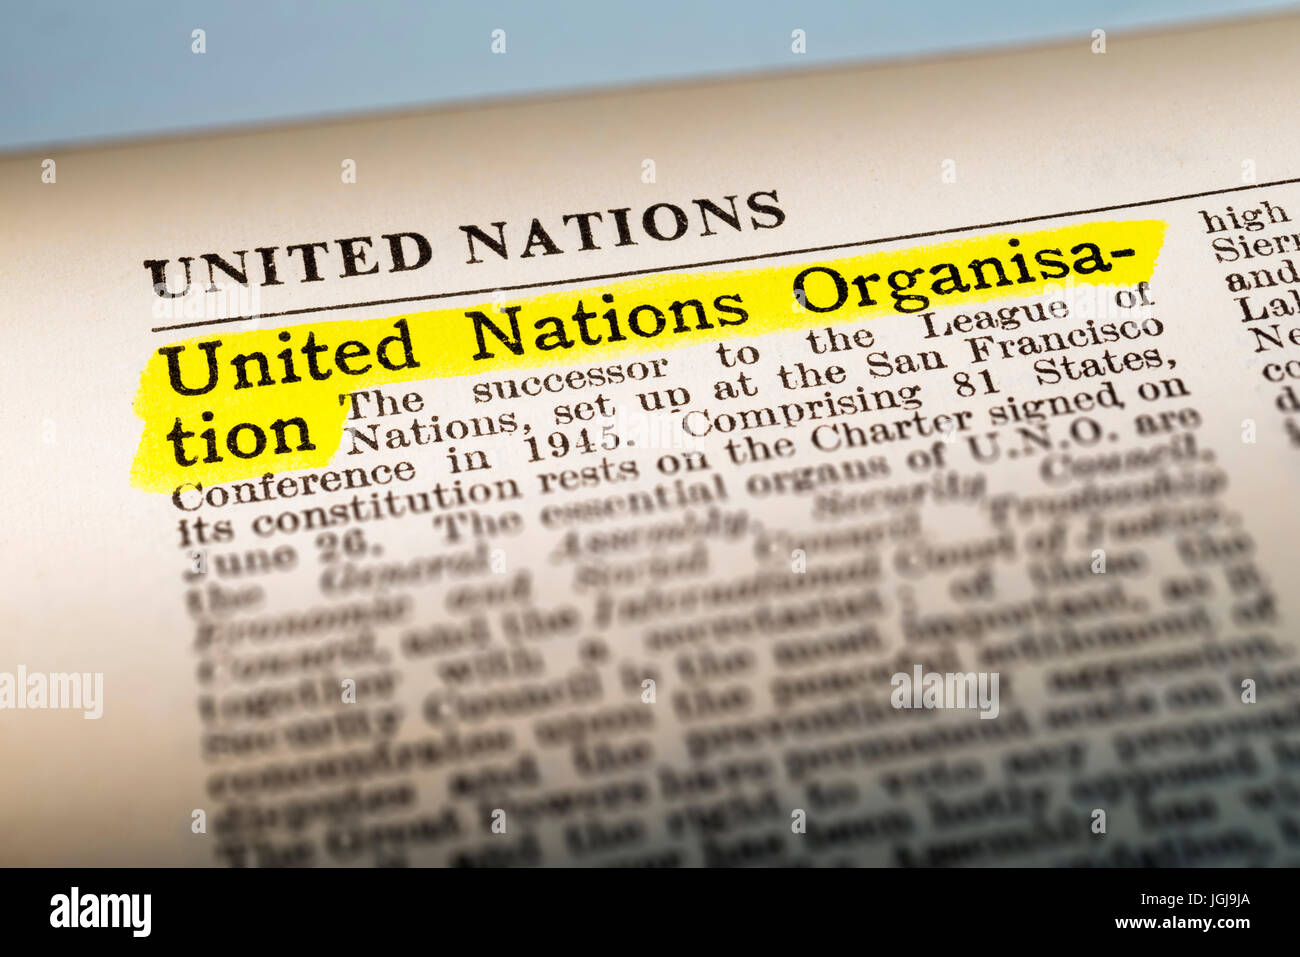 United Nations Organisation - dictionary definition highlighted - Stock Image